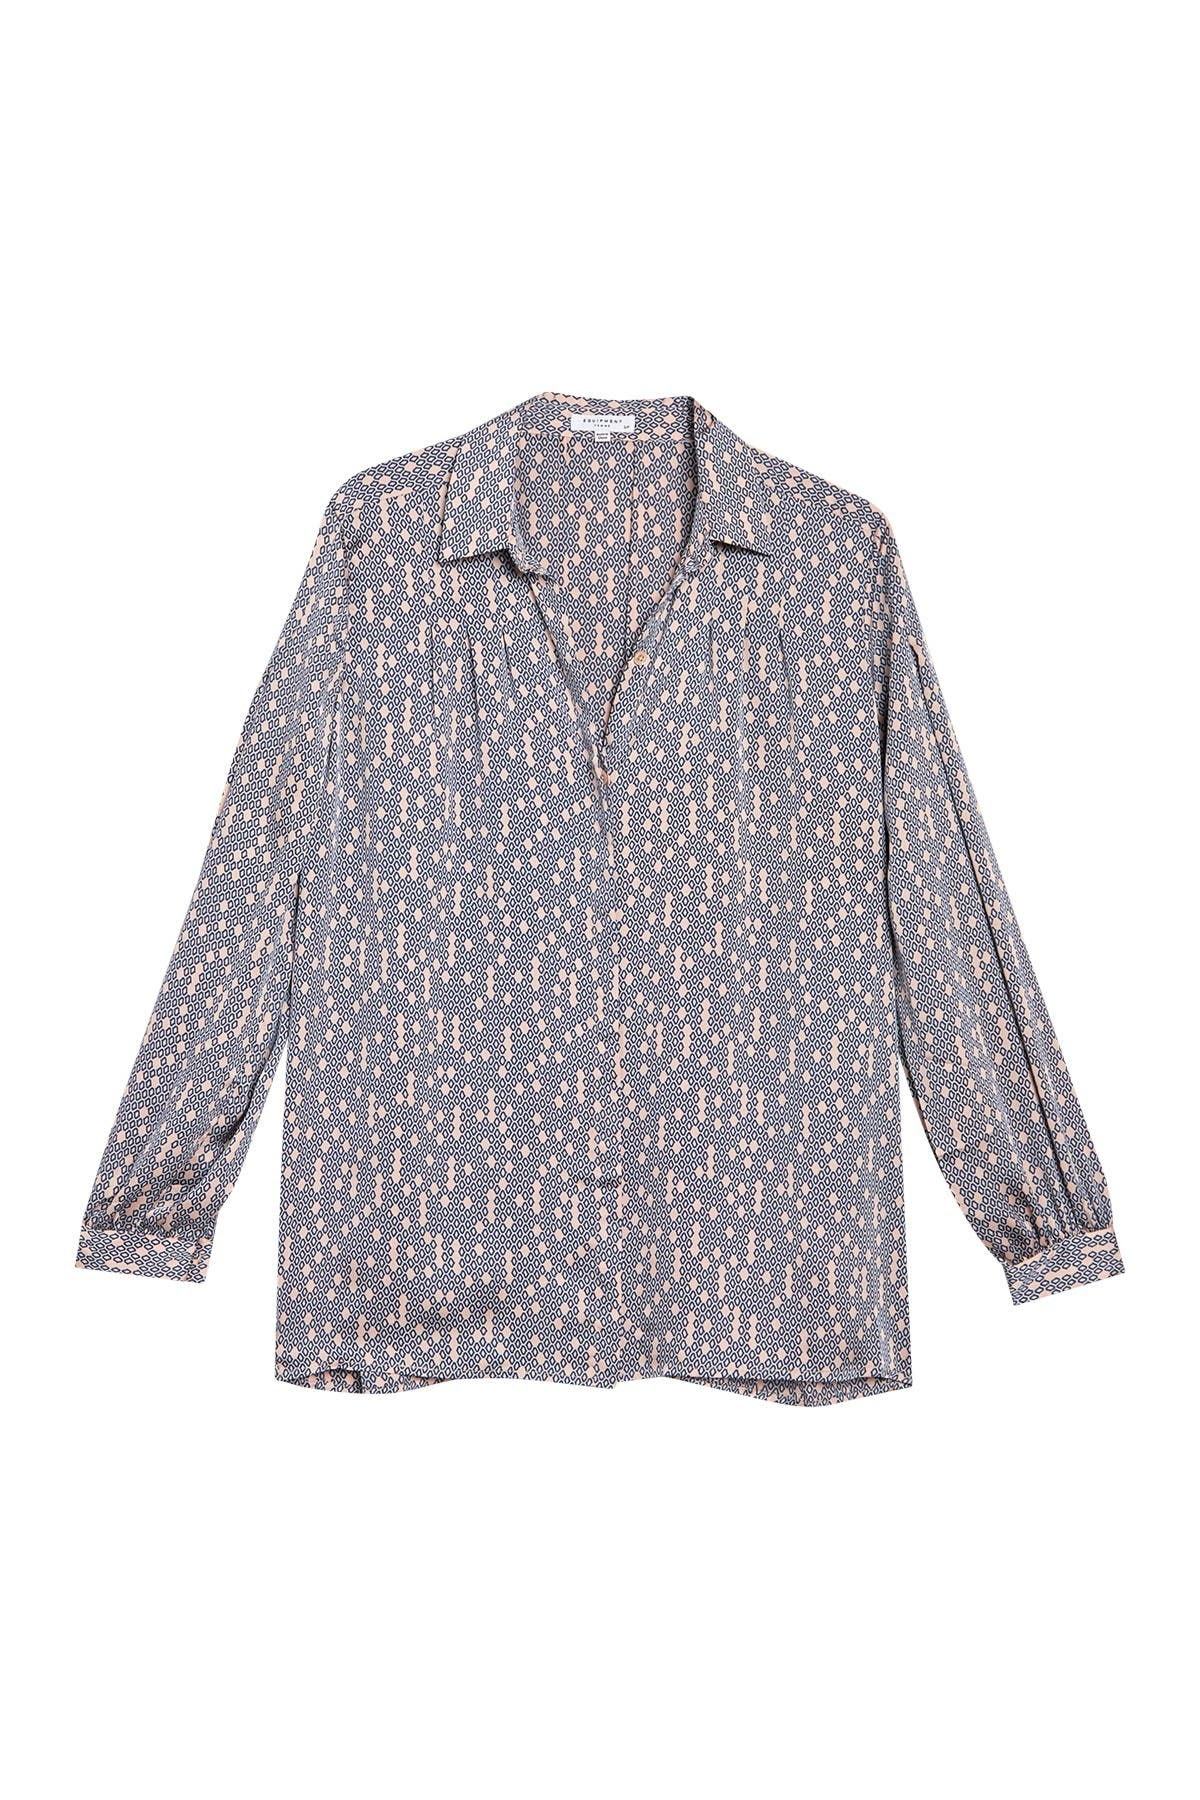 Image of Equipment Bouvier Woven Printed Shirt